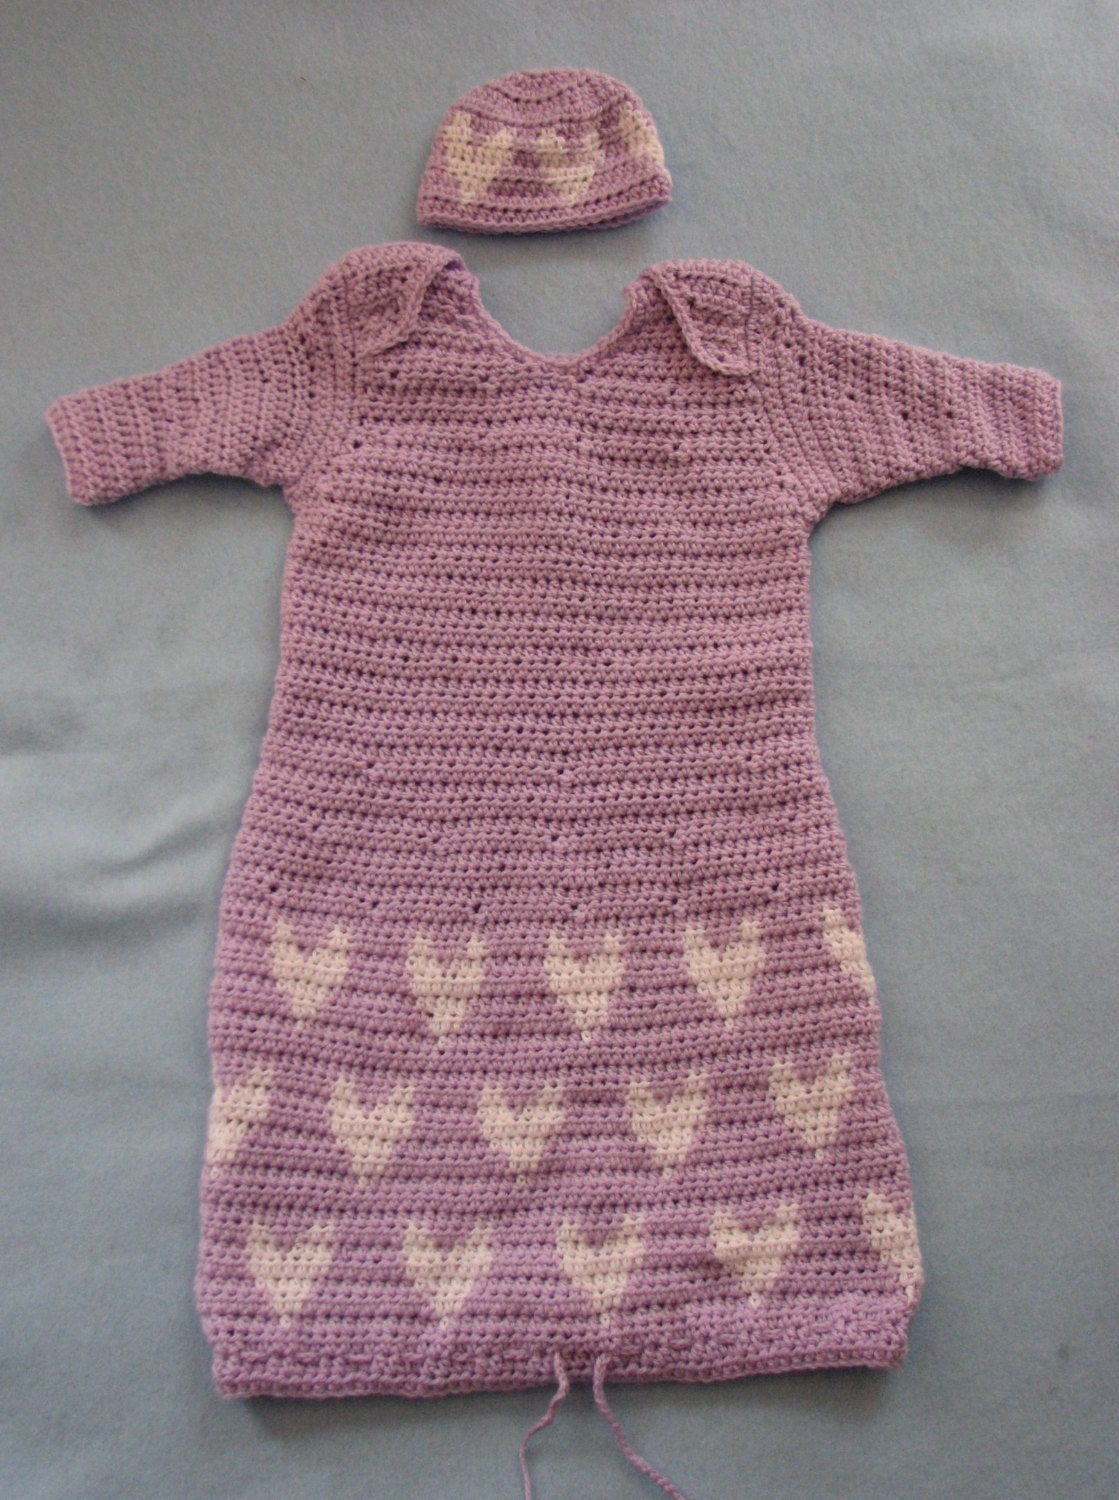 Free Crochet Patterns For Pajama Bags : Lilac Sweet Pea Pajama Sleepwear Infant Bag with Hearts